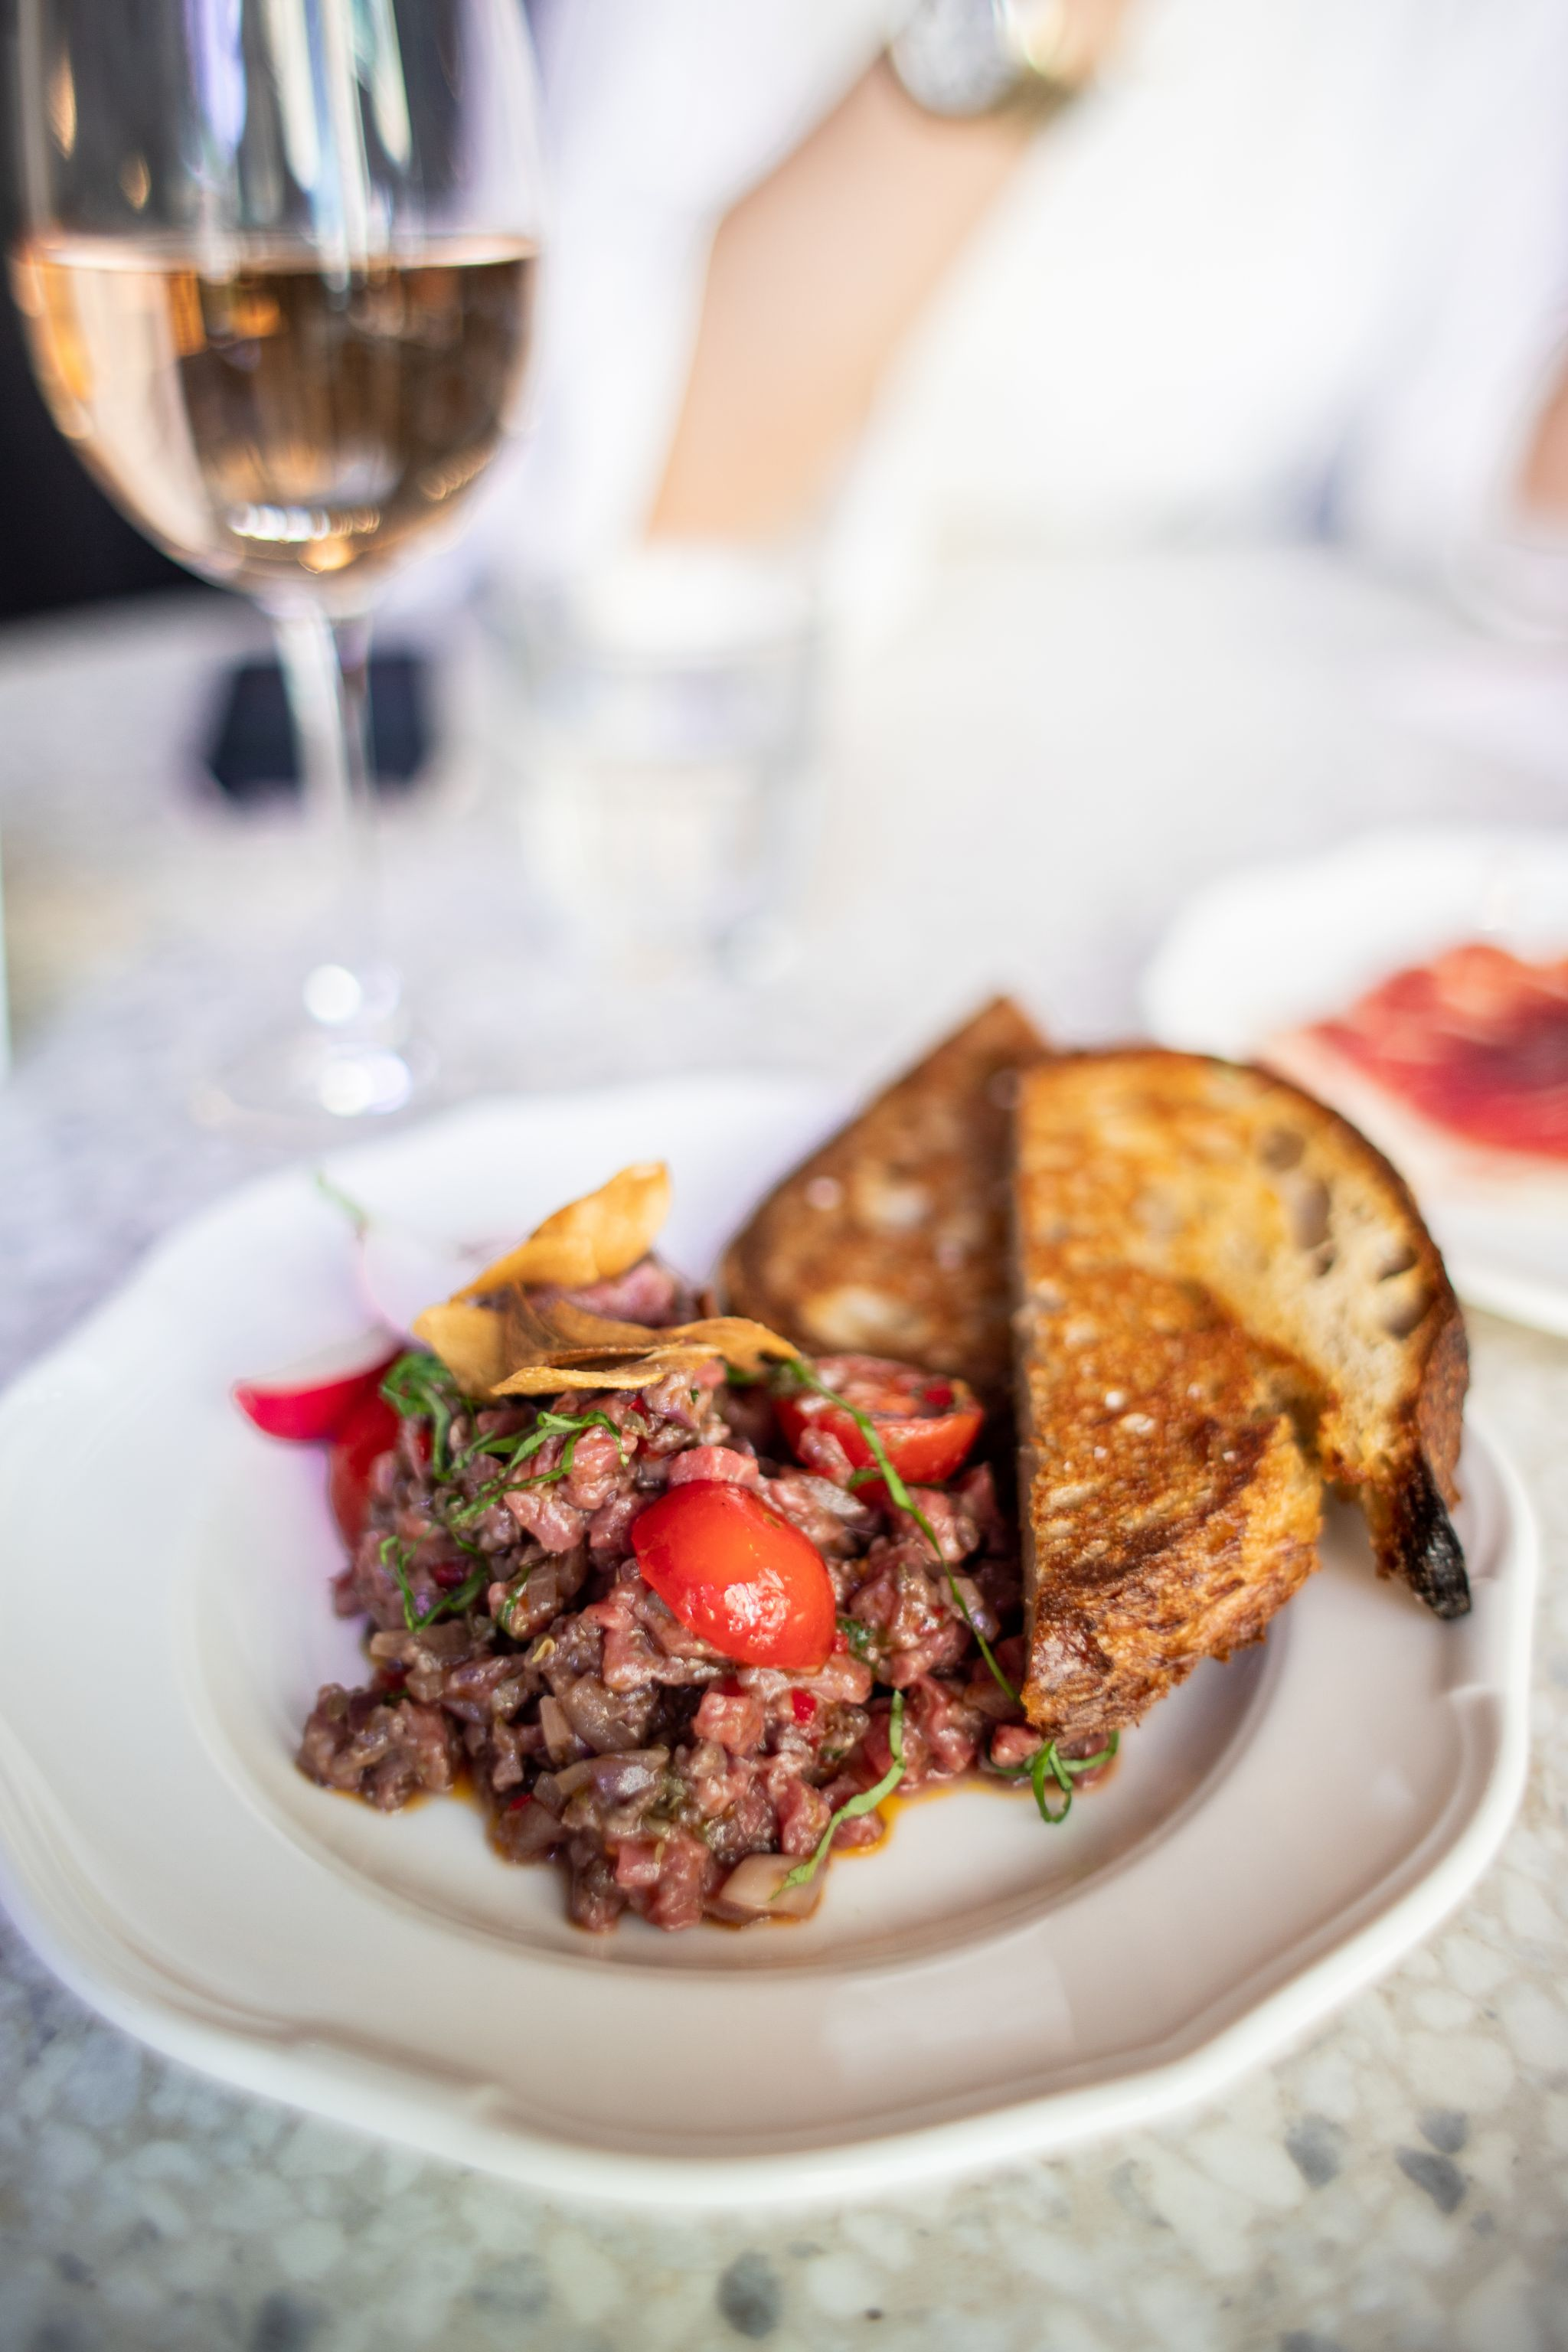 st-vincent-newcastle-restaurant-review-north-east-steak-tartar